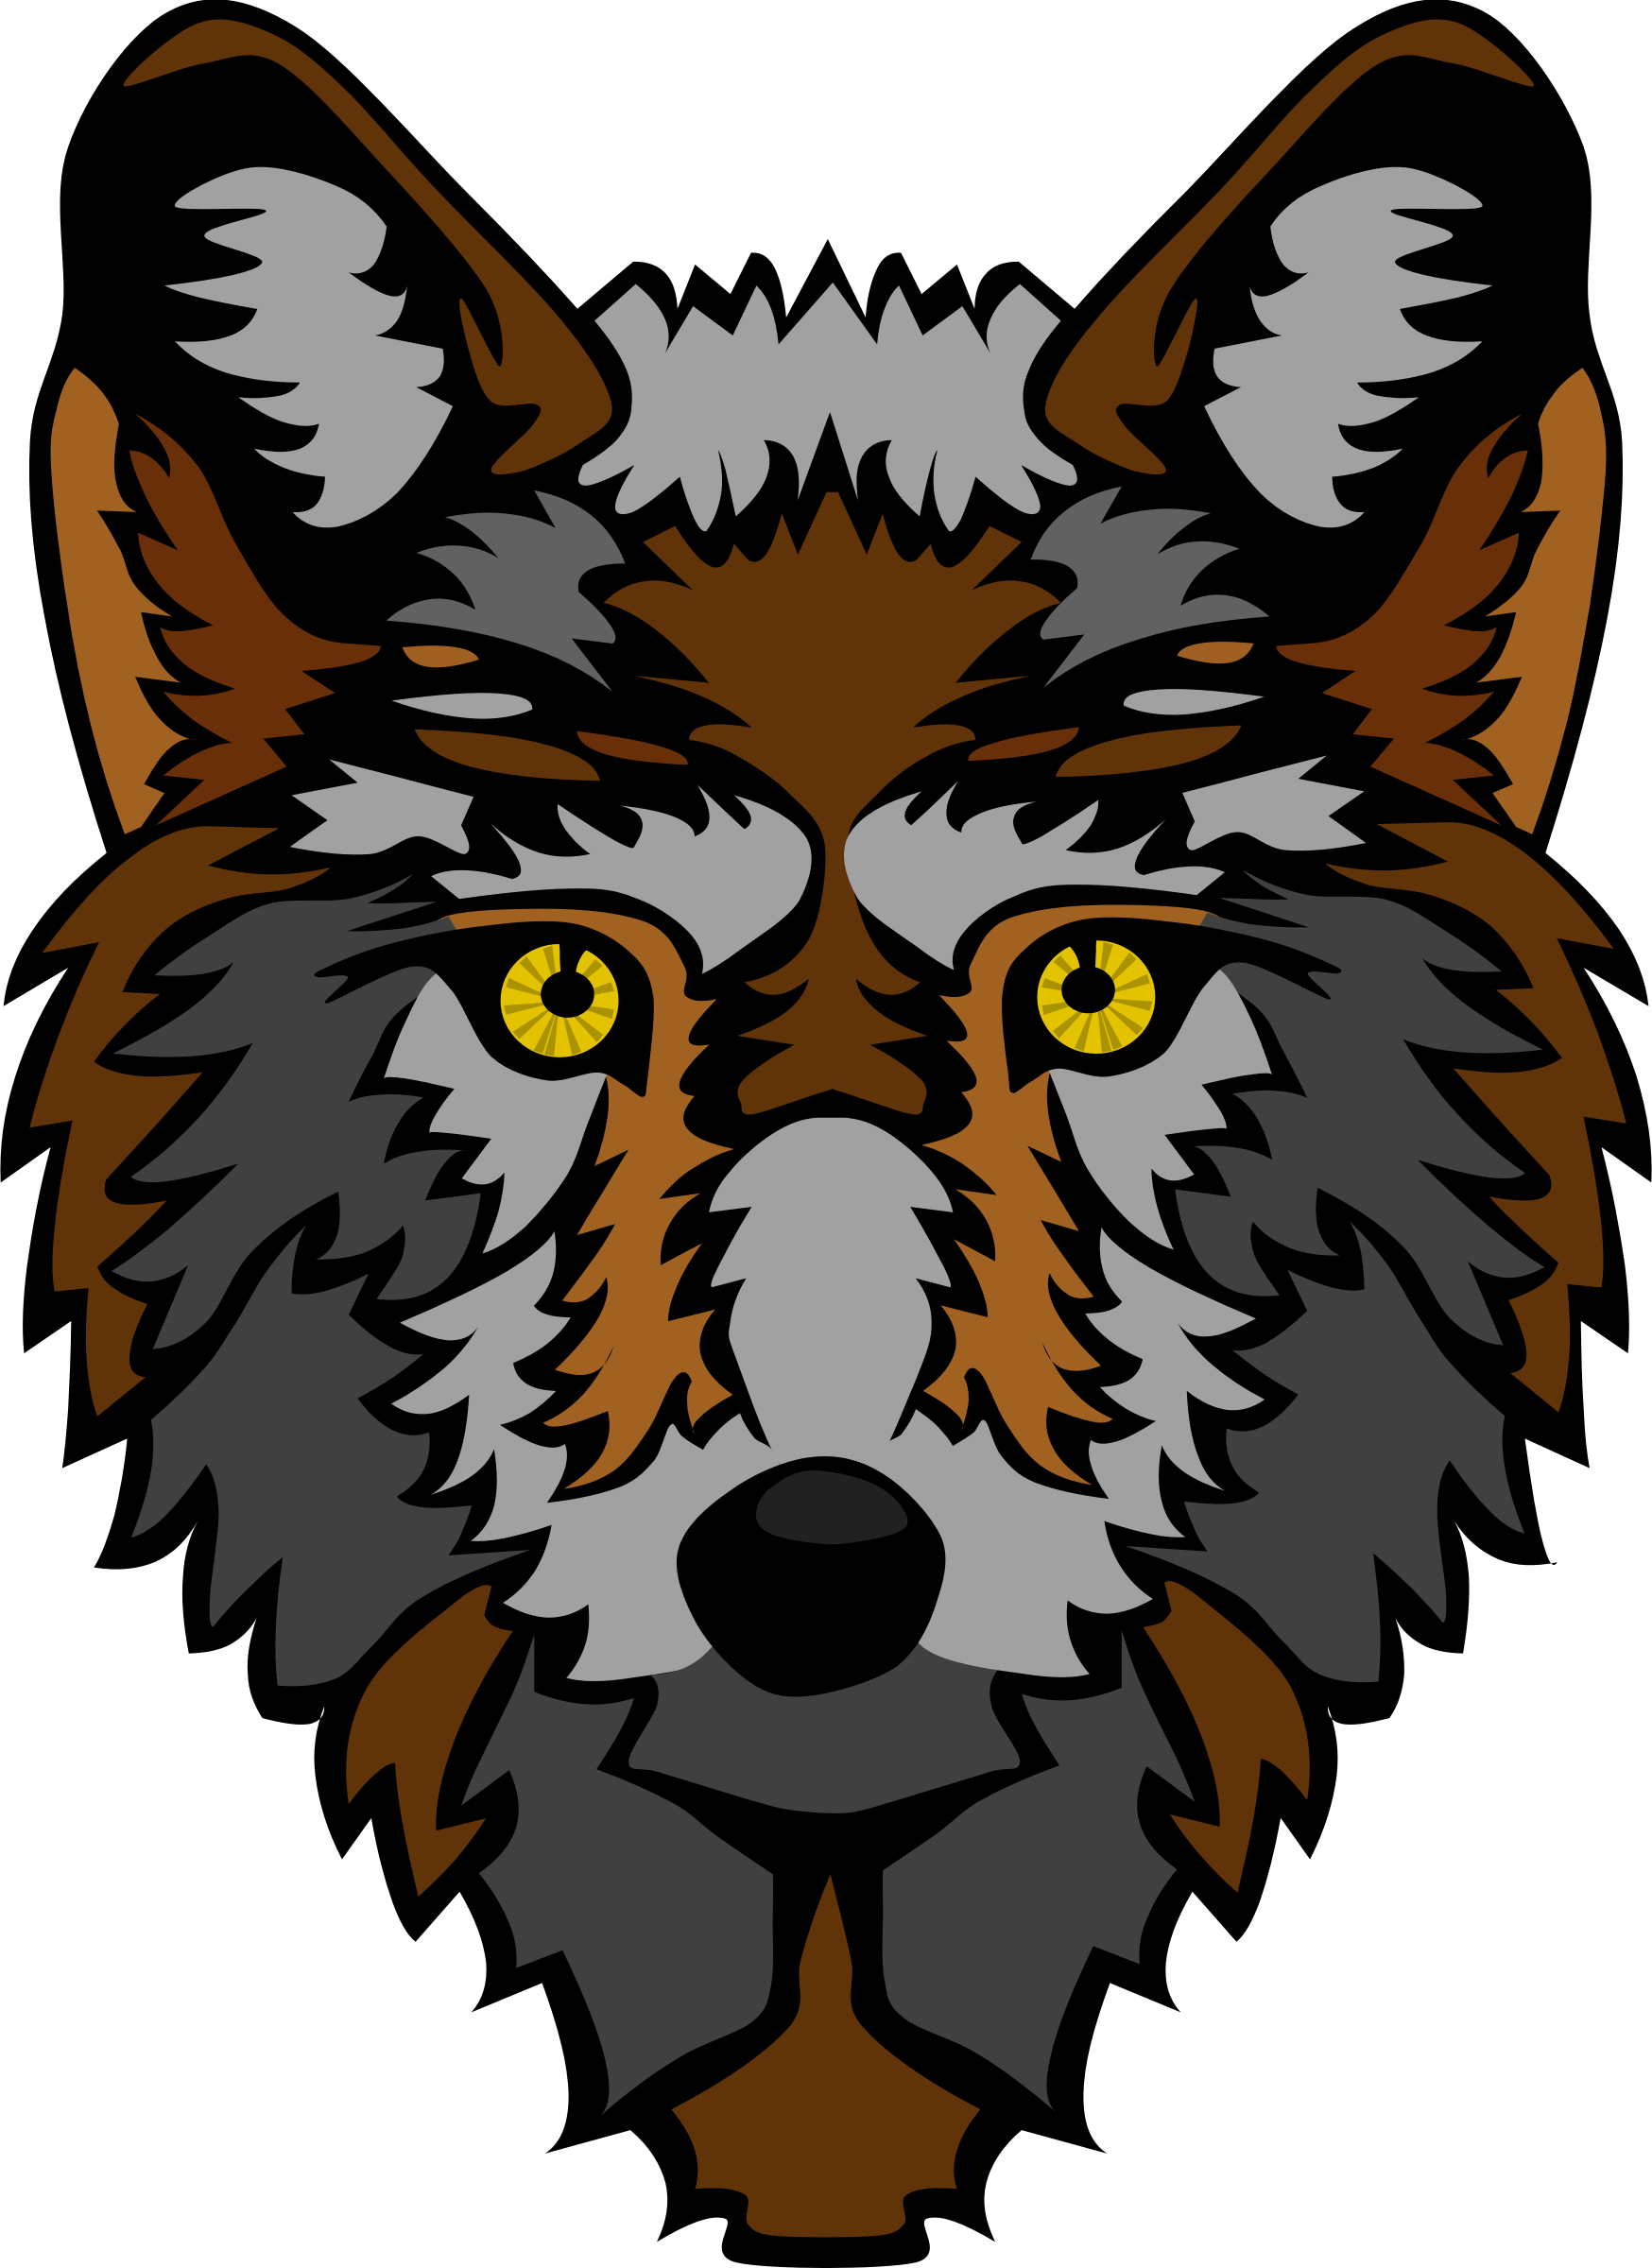 Wolf Head (Stylized) by Gerald_G